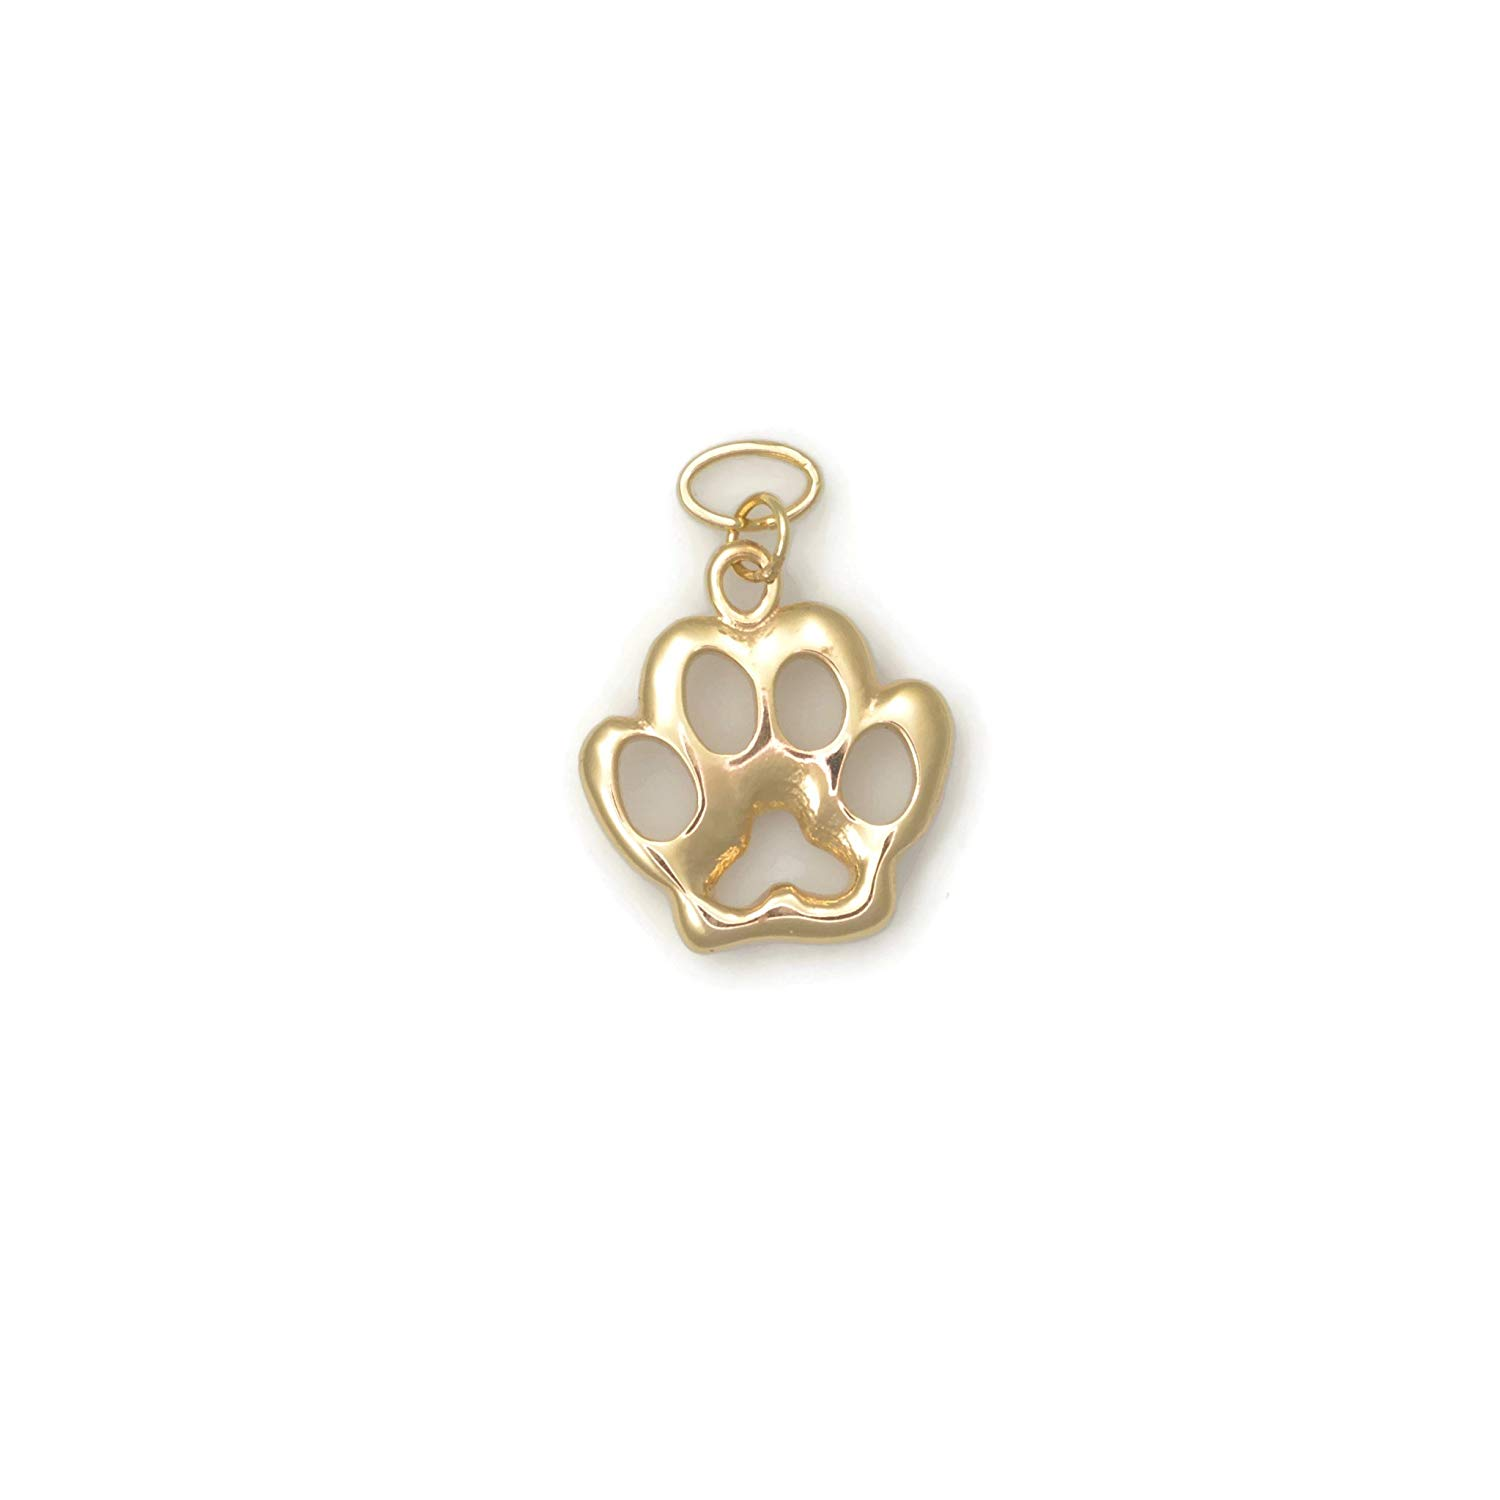 8mm Open Dog Paw Charm in 18k Yellow Gold